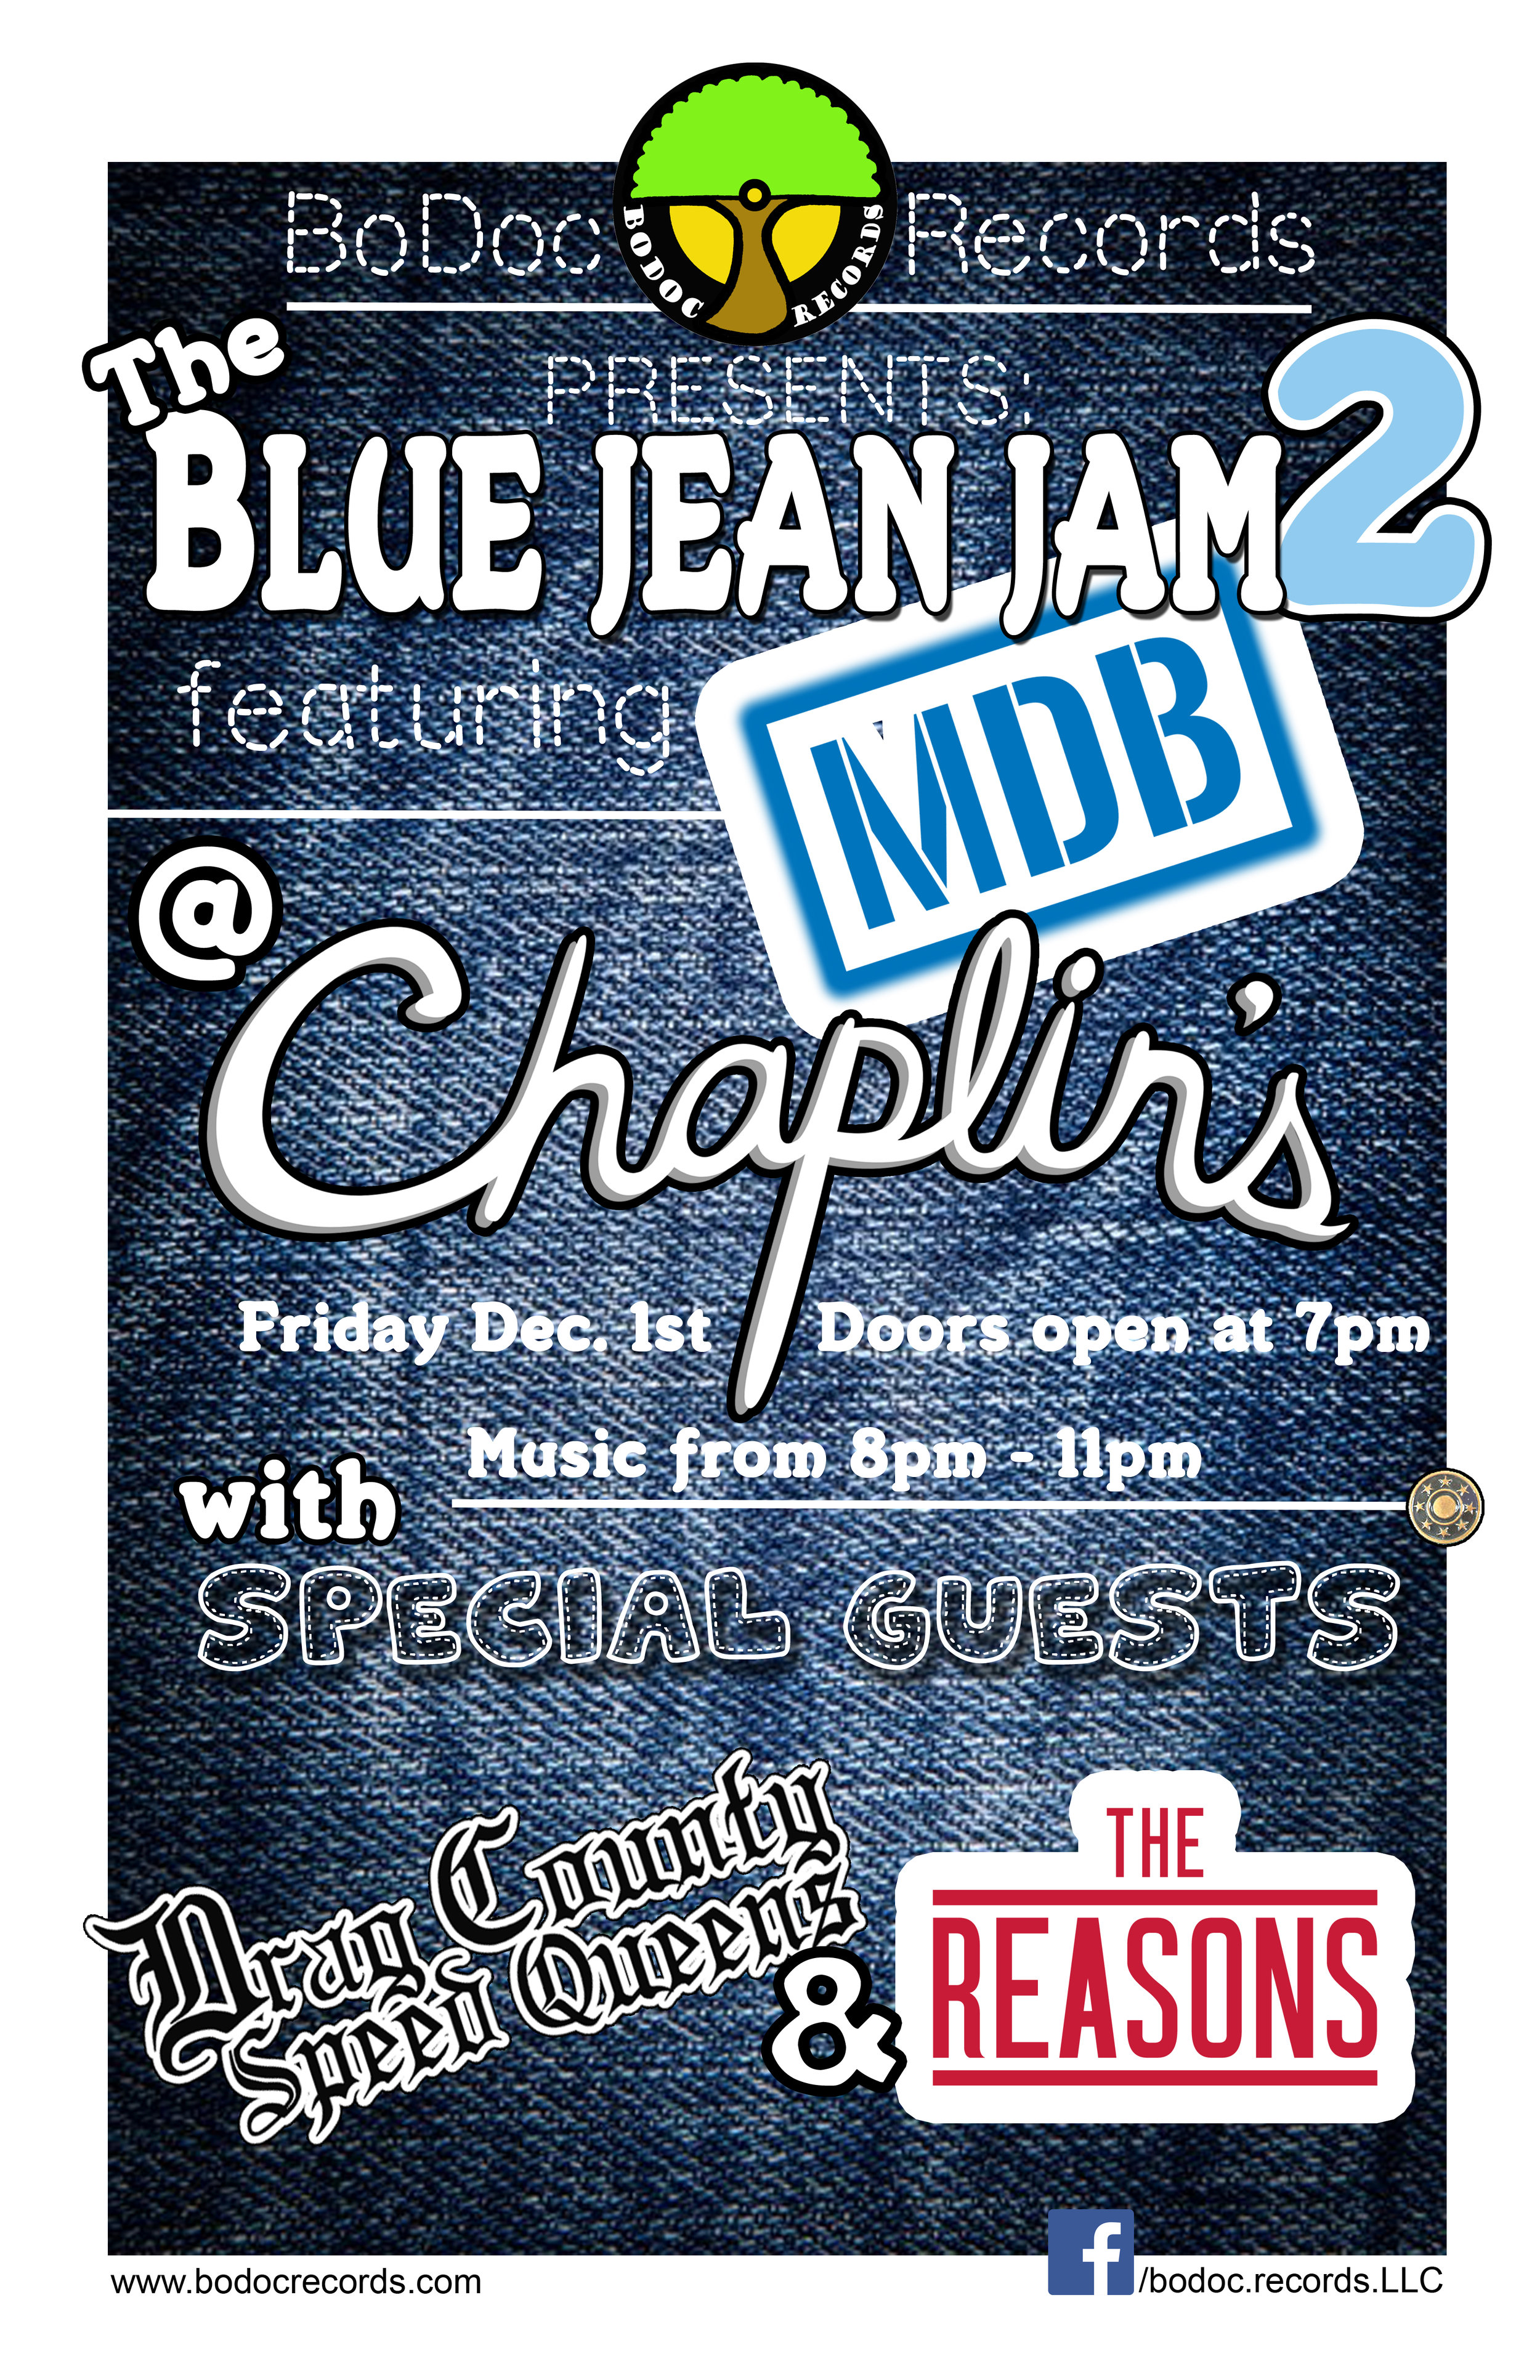 BoDoc Records Presents: The Blue Jean Jam 2 - Featuring MDB with The Reasons December 1st @ Chaplin's